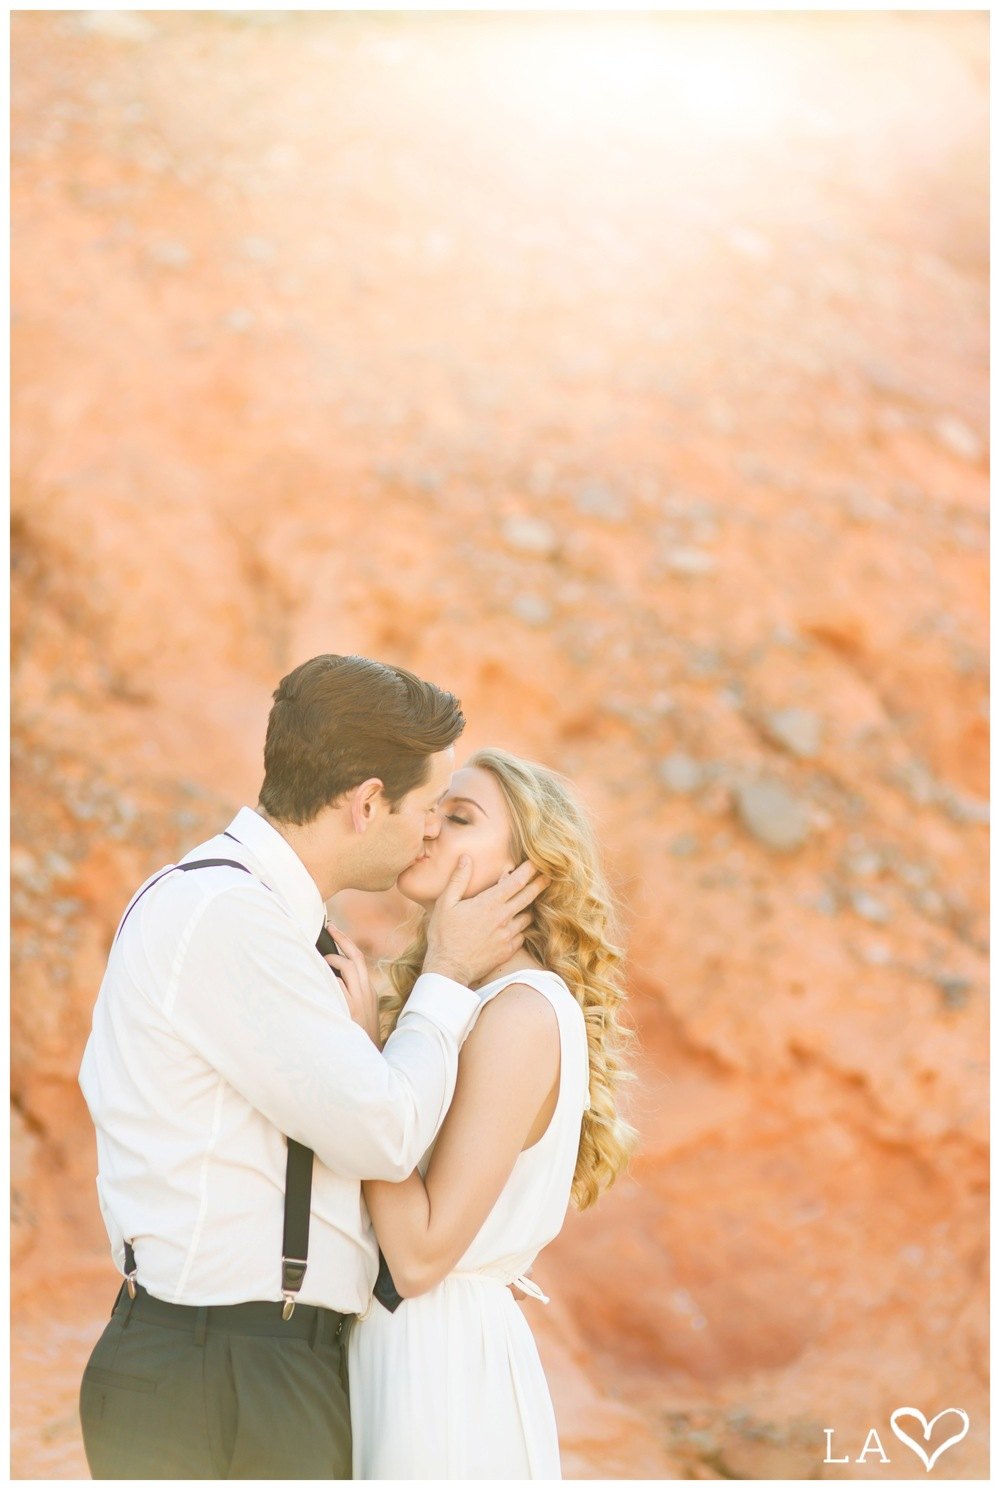 Las Vegas Wedding Photographer - Lake Mead - Daniella and Drew-6.jpg